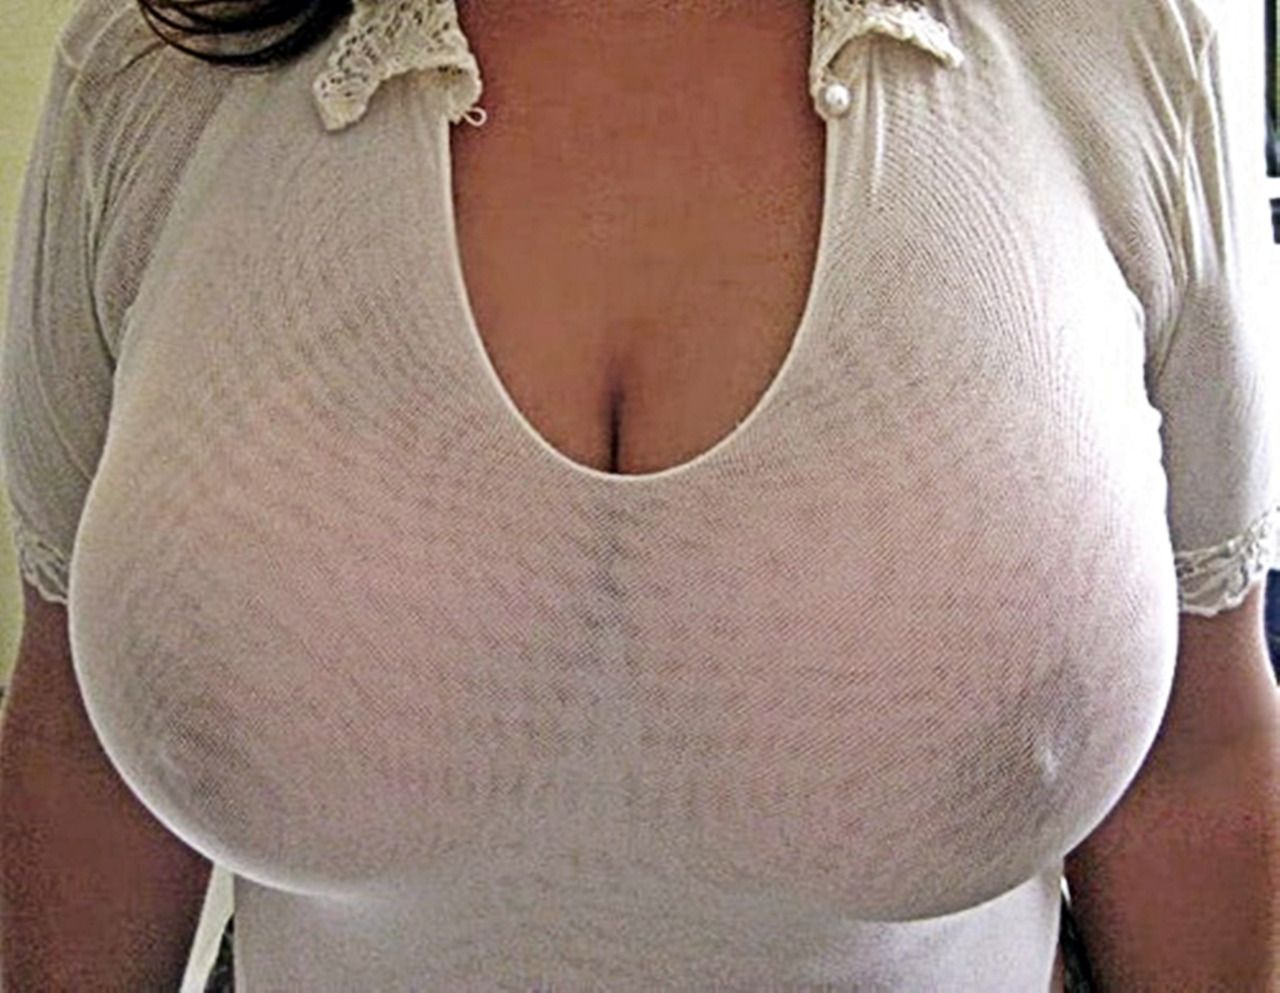 huge boobs lactation